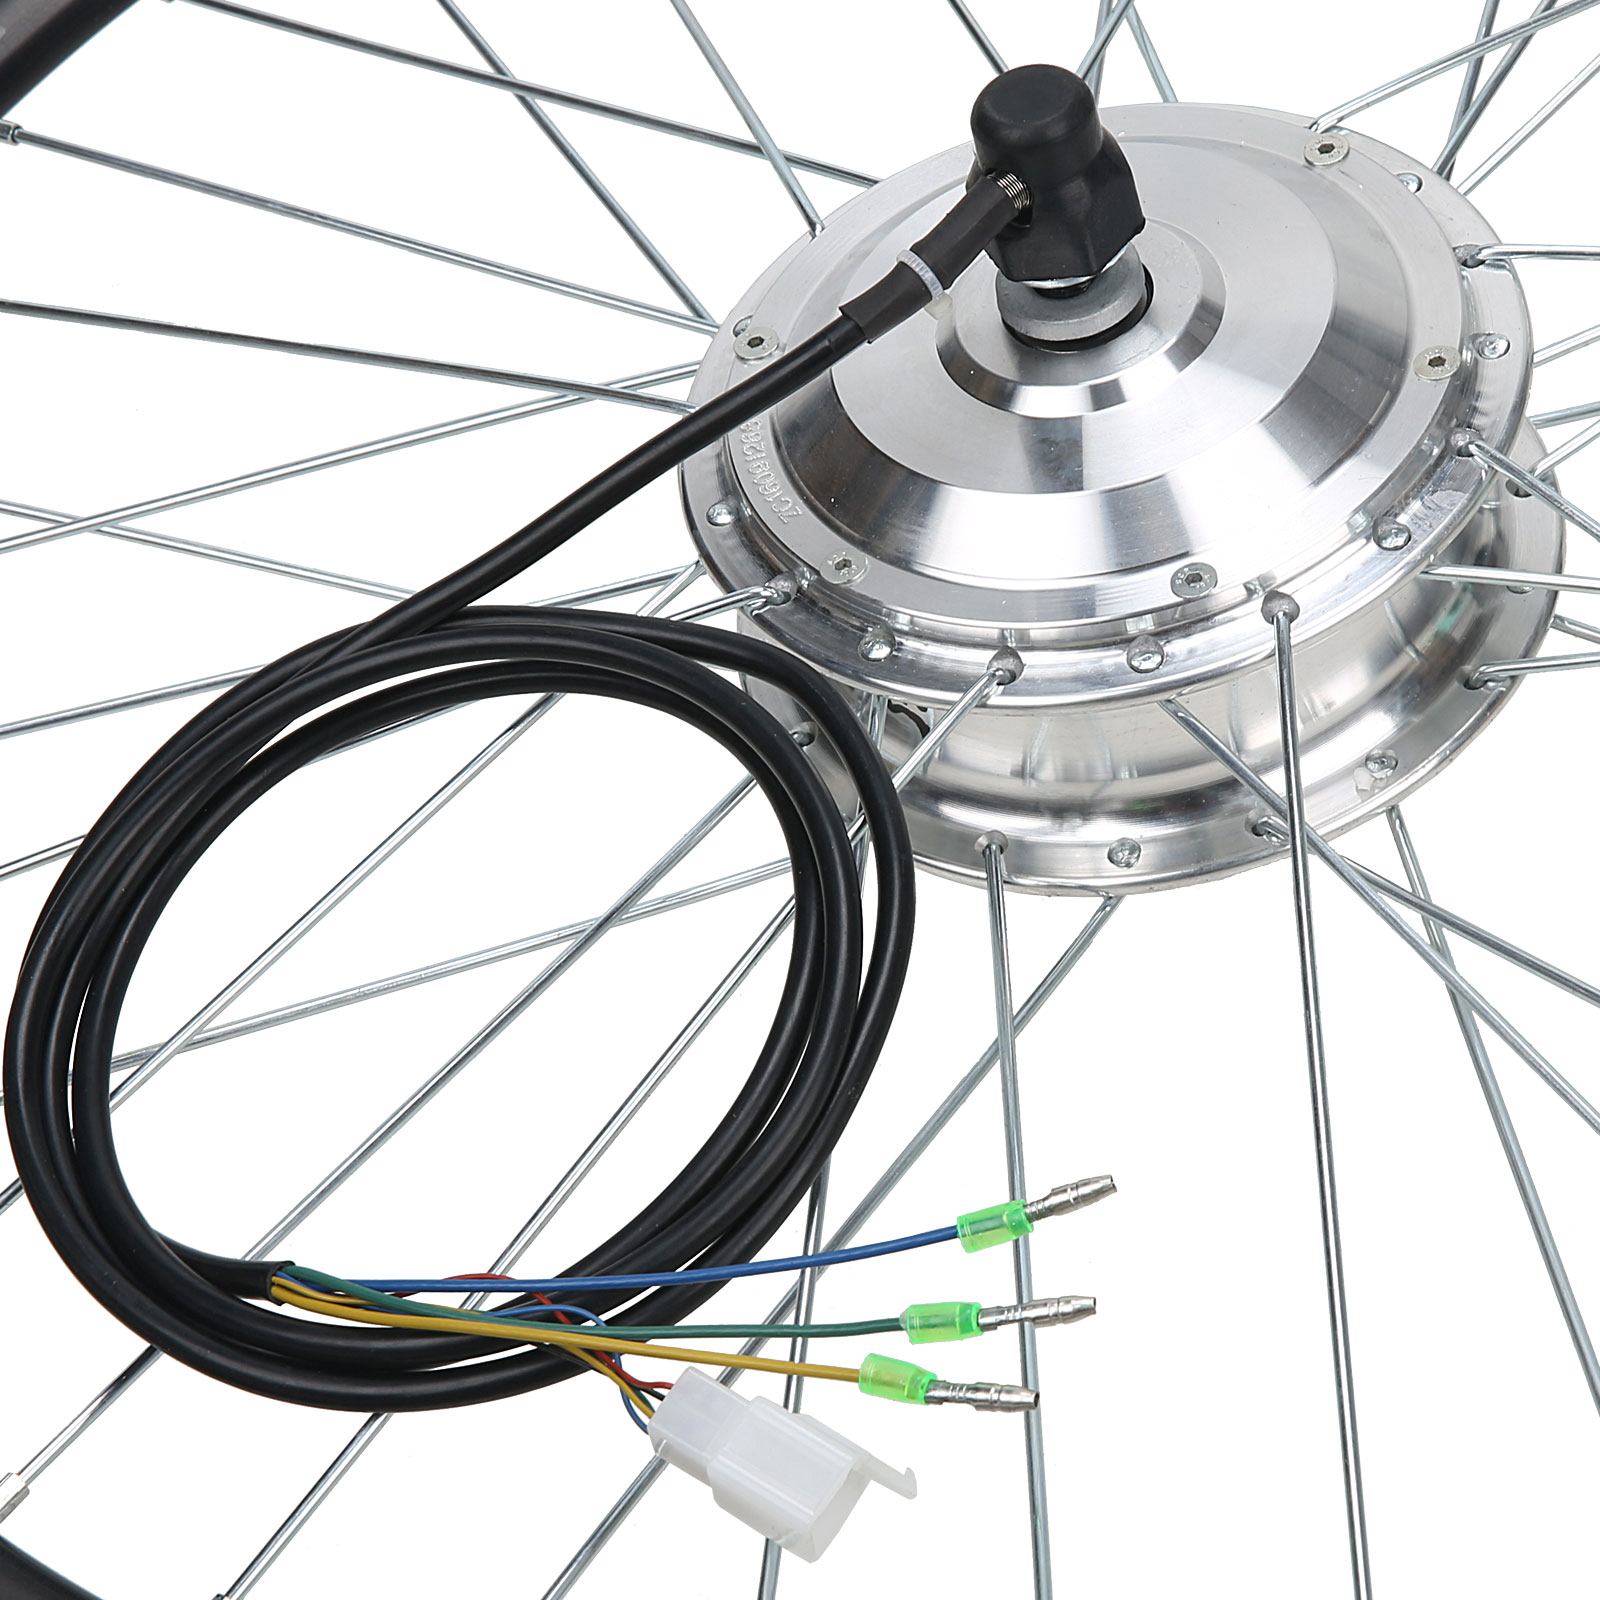 36v 250w electric bicycle motor conversion kit speed e for Fastest electric bike hub motor